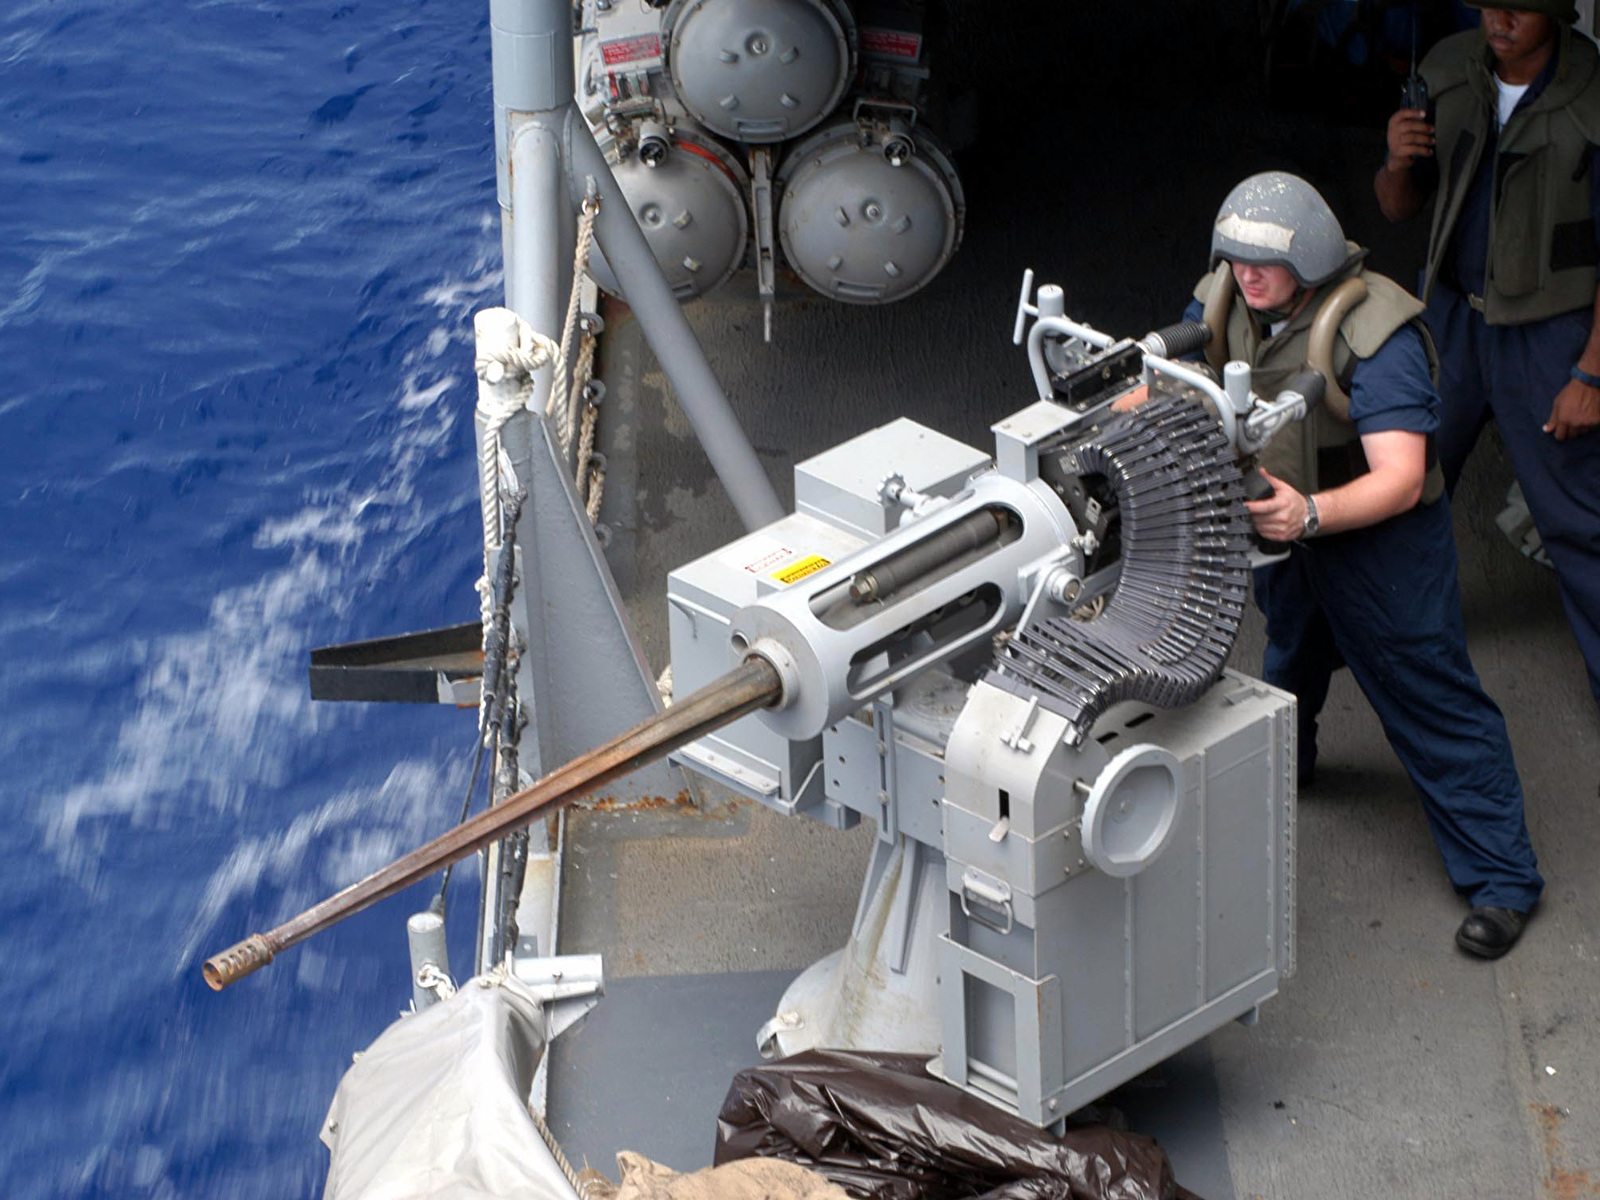 Noticias Y Generalidades - Página 5 Mk38-m242-bushmaster-being-manned-aboard-the-guided-missile-frigate-uss-ingraham-ffg-61-june-2003-1600%C3%971200